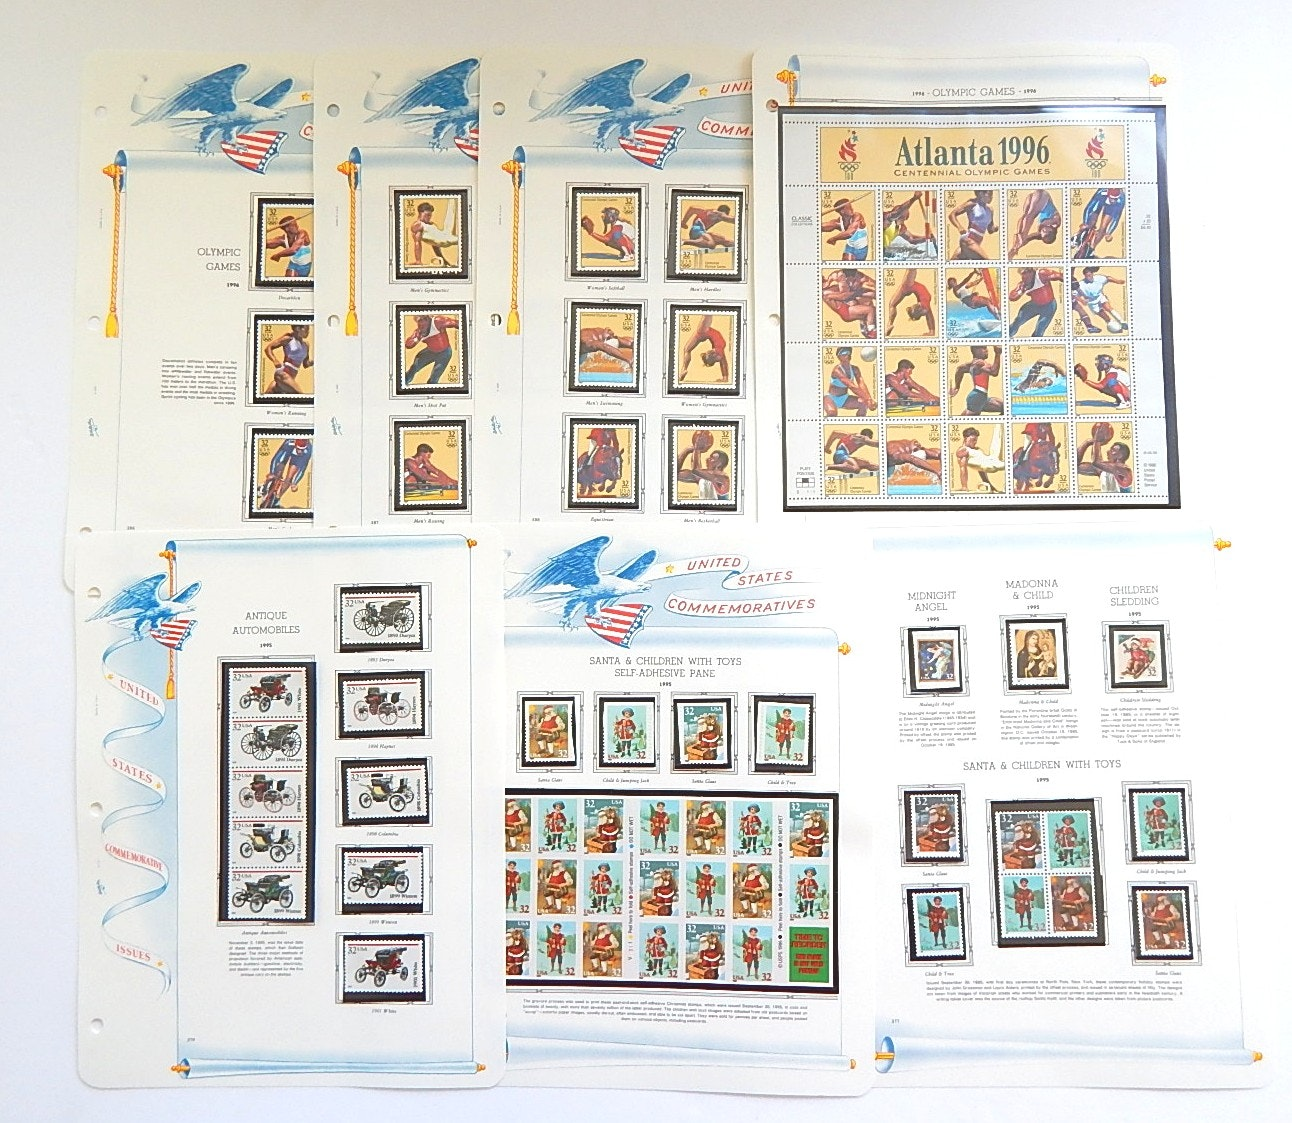 United States Commemorative Stamps with Olympics, Antique Automobiles, Xmas